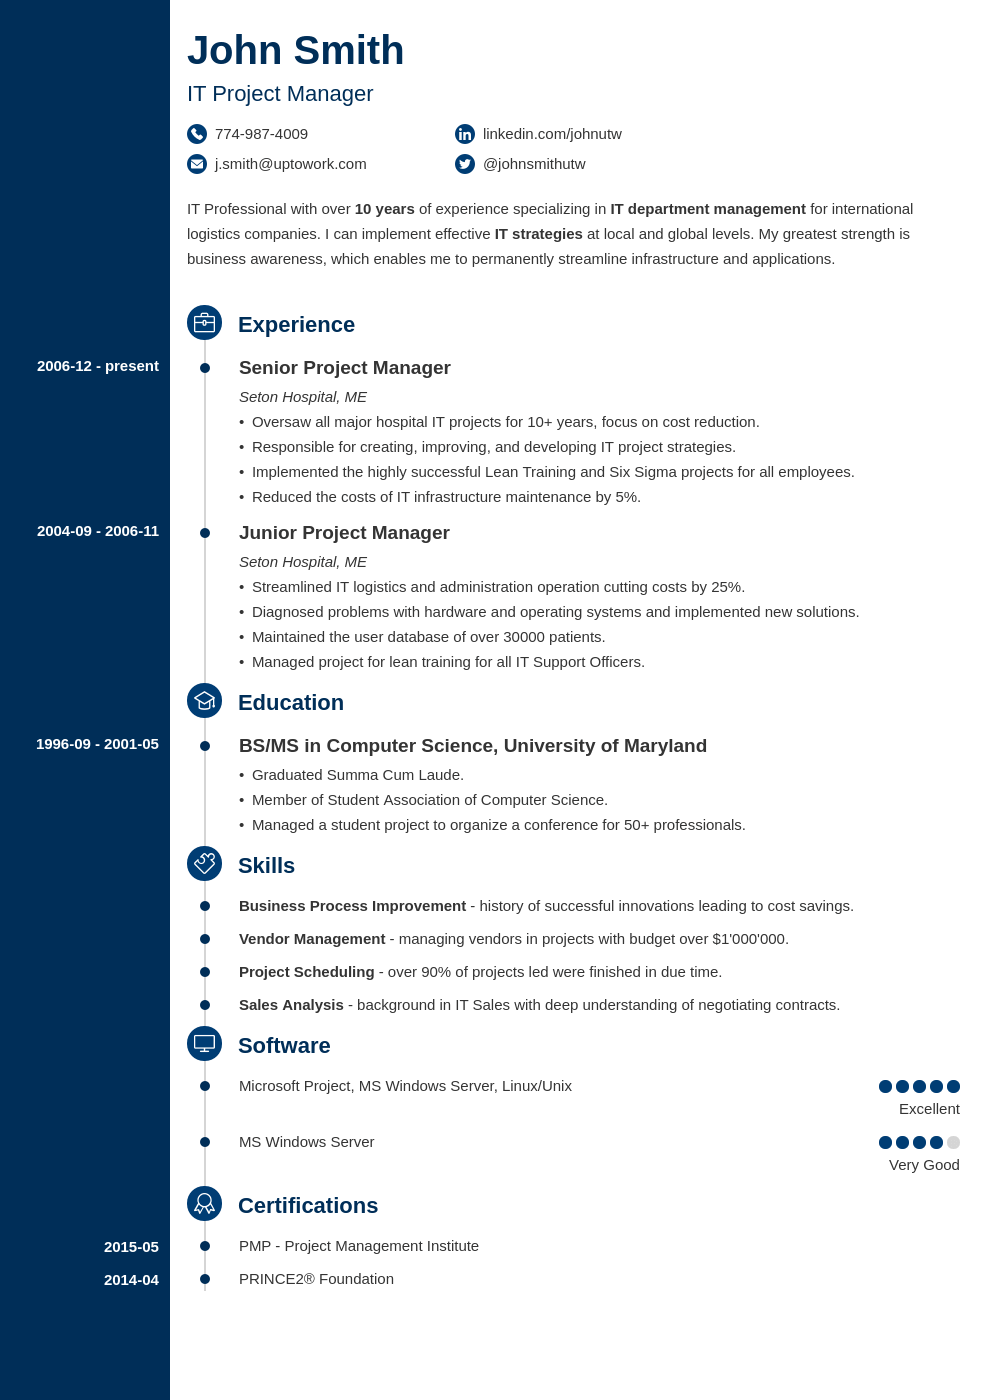 Cv Templates Free | 20 Resume Templates Download Create Your Resume In 5 Minutes